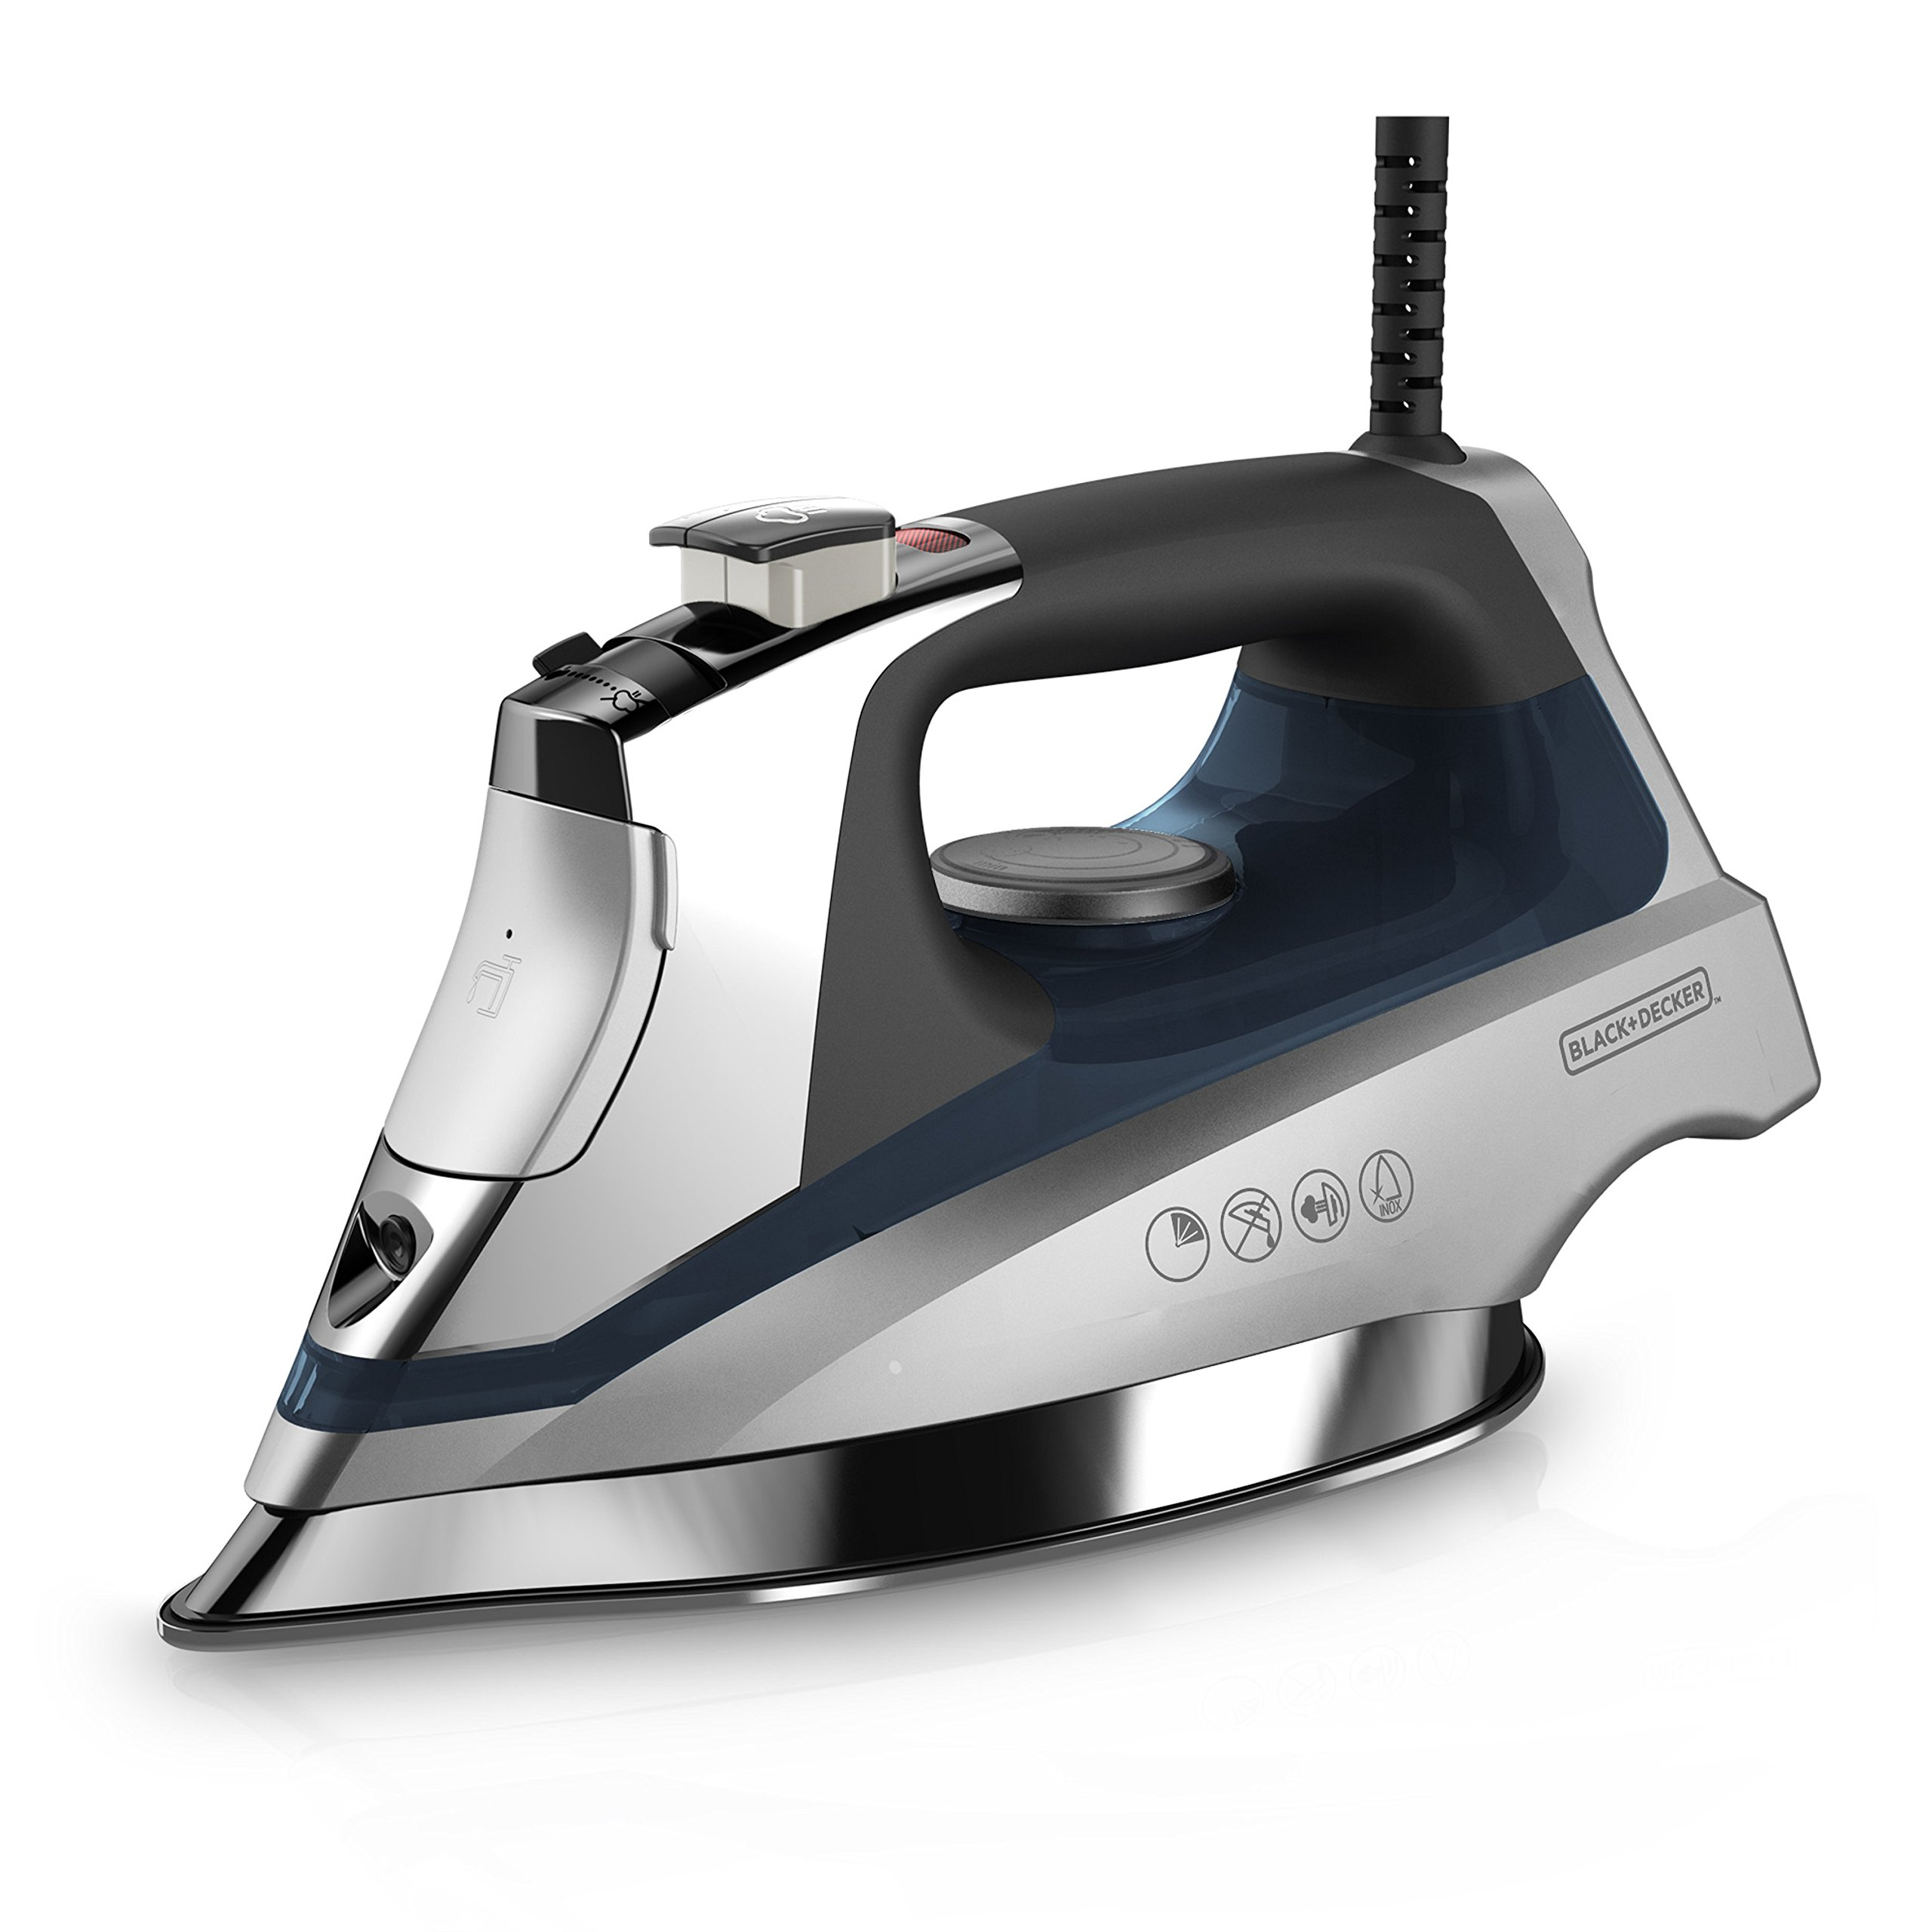 BLACK+DECKER Allure Professional Steam Iron, D3030, Blue by BLACK+DECKER